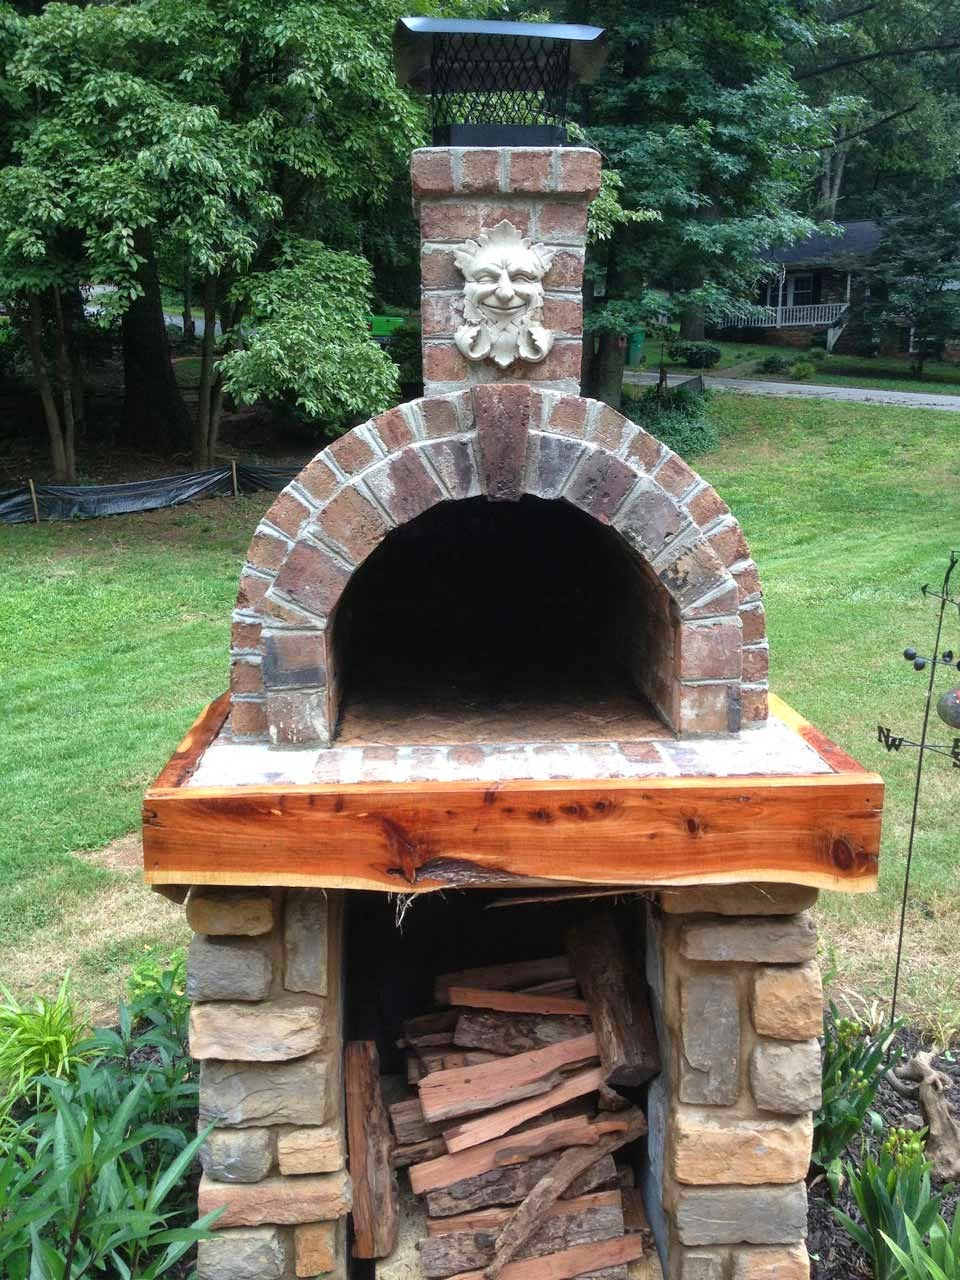 Shiley Wood Fired Brick Pizza Oven South Carolina The Brickwood